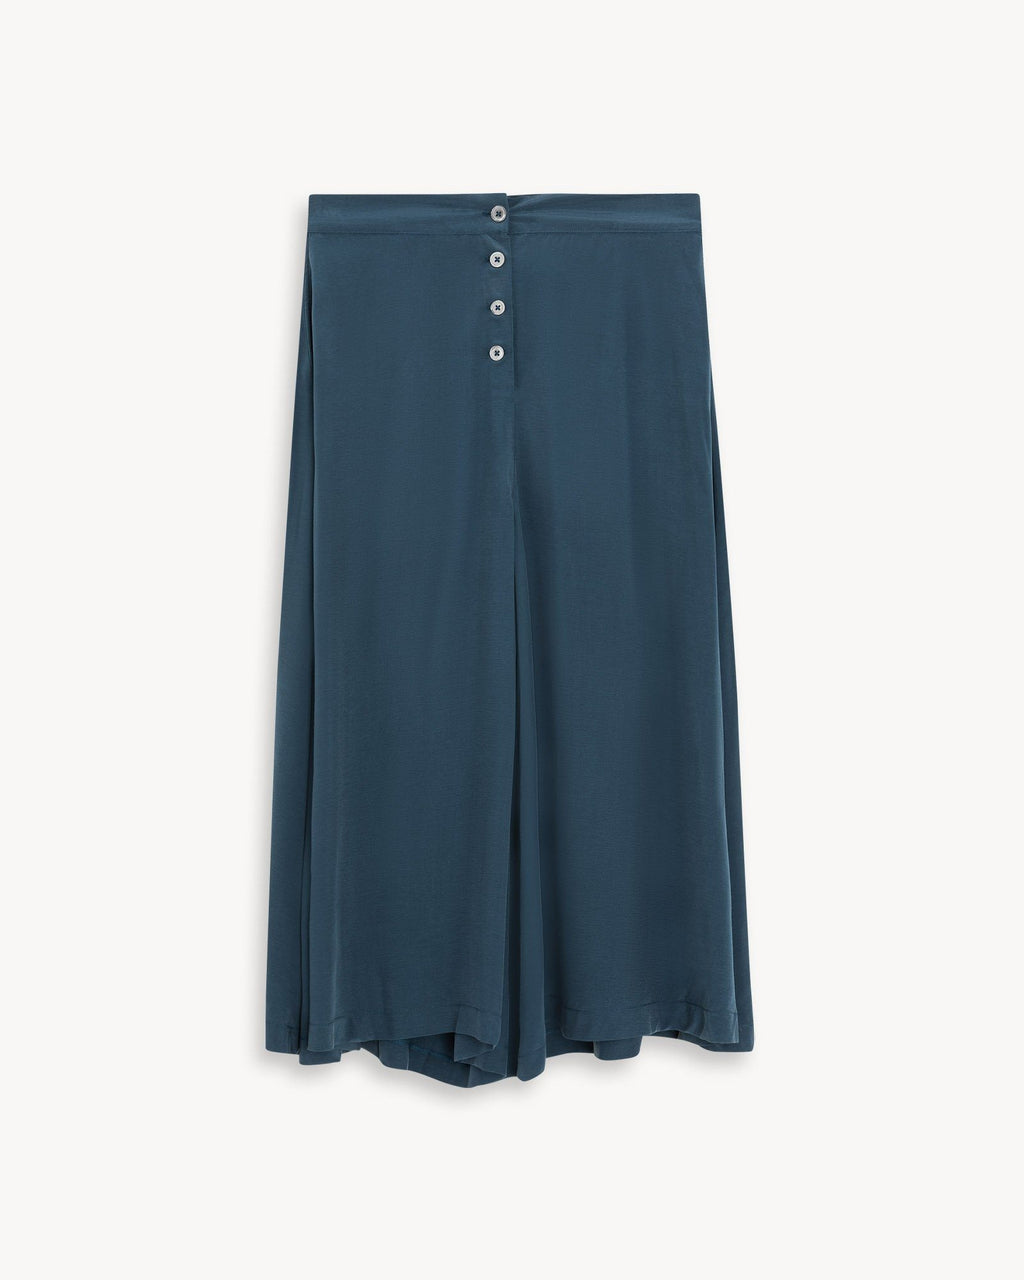 variant_1 | EN Pants Summer Blue Women Heaven Lab | DE Hose Sommer Blau Damen Heaven Lab